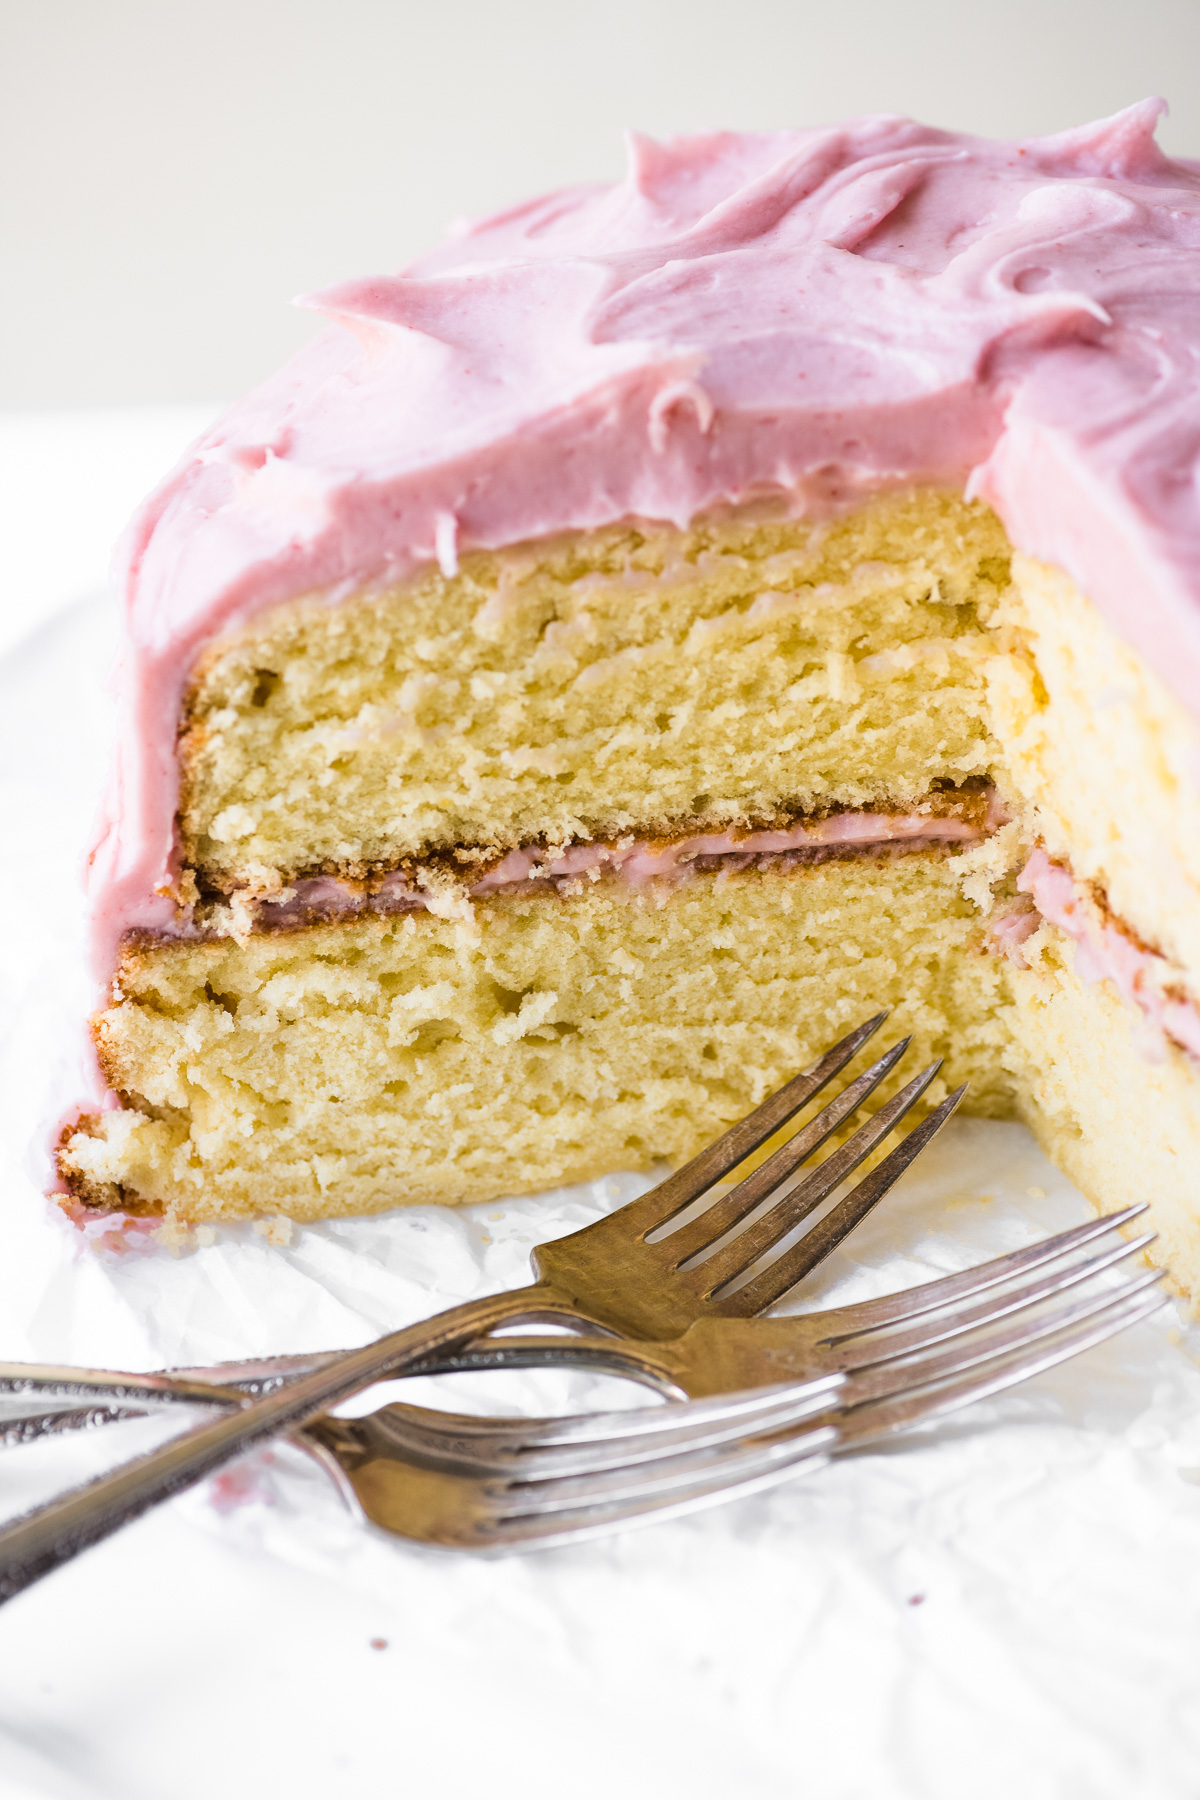 a yellow cake with strawberry frosting, cut open